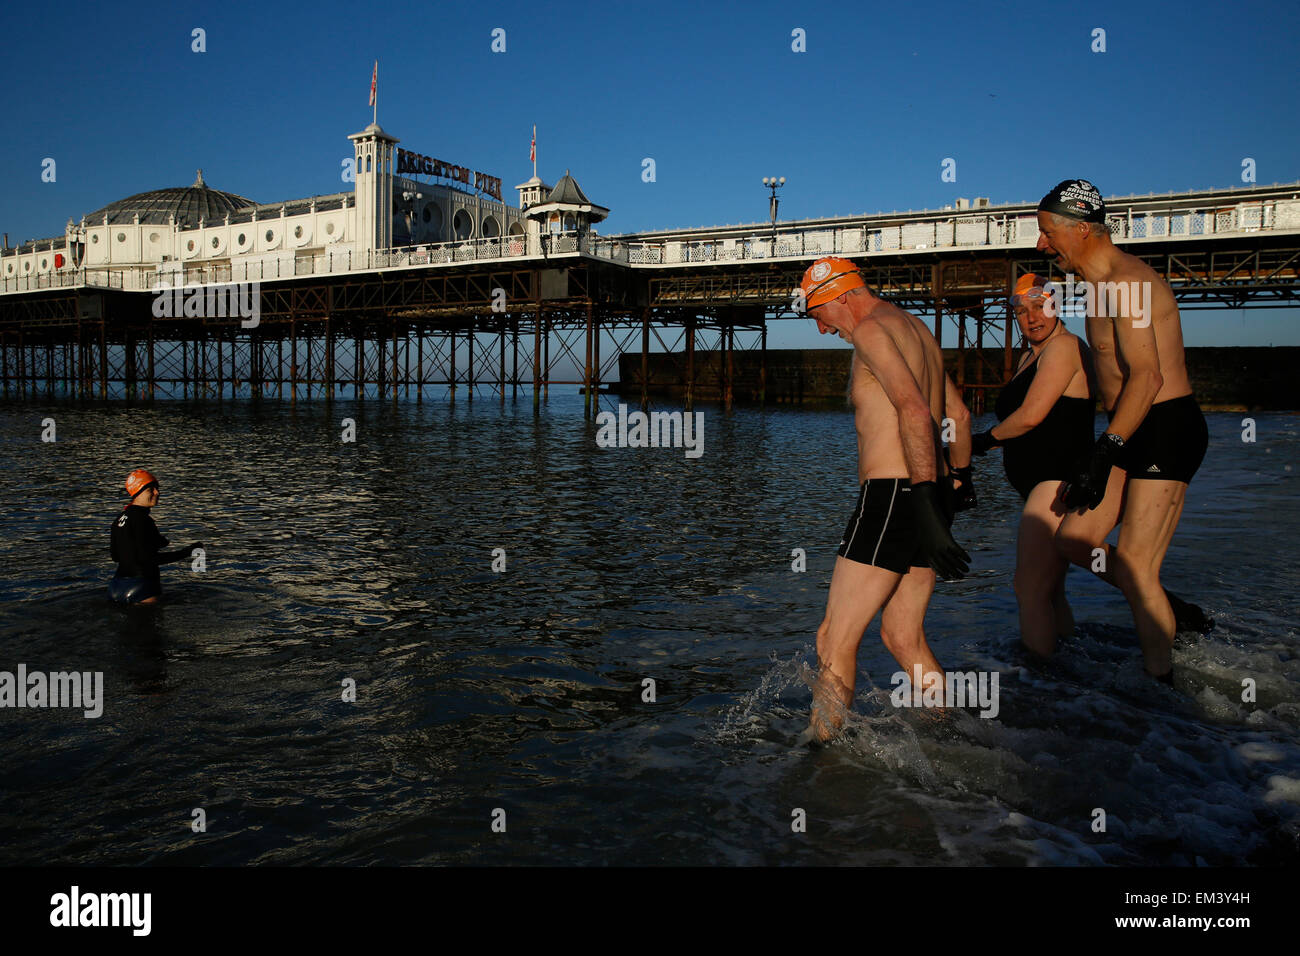 Members of Brighton Swimming Club wade into the sea before a morning swim in the sun by Brighton Pier in East Sussex - Stock Image